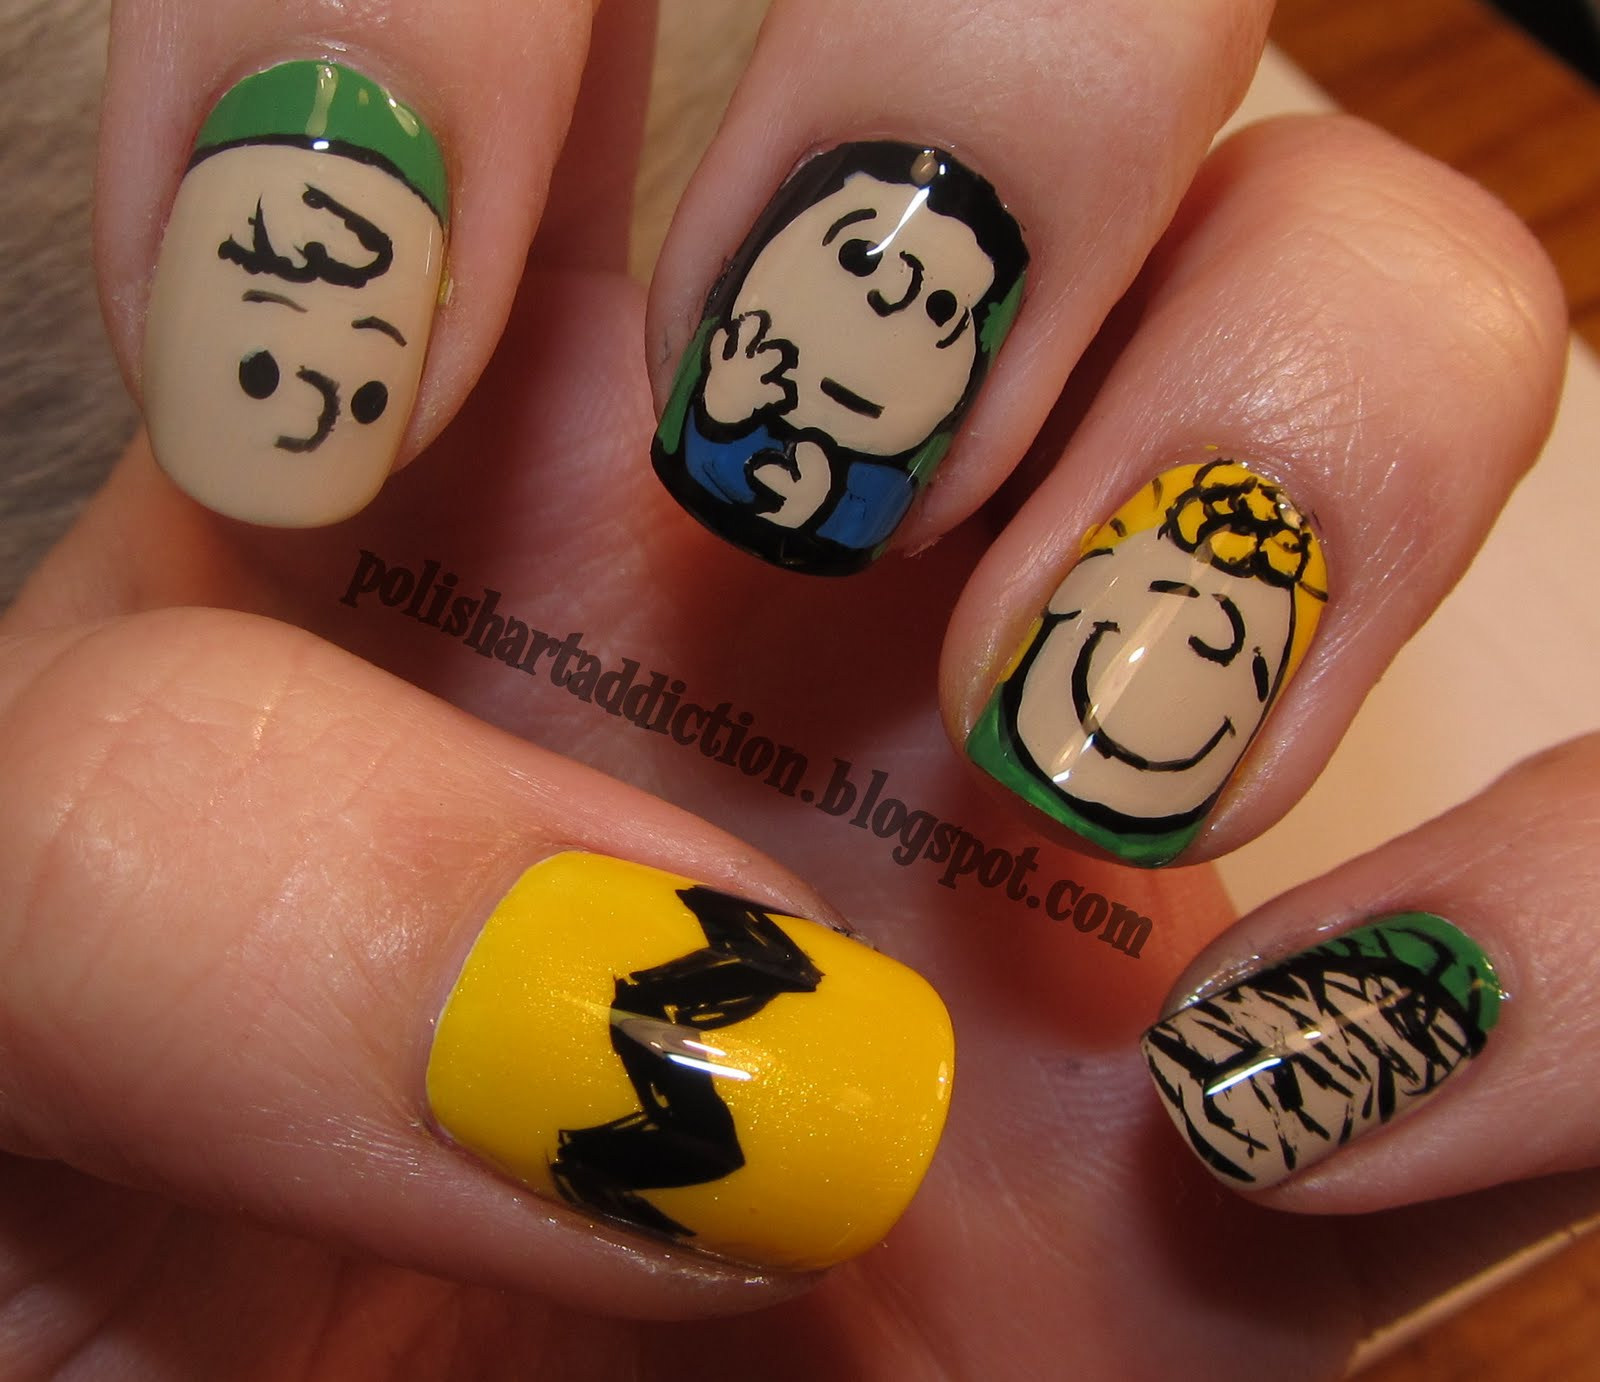 You're a Good Man-icure, Charlie Brown